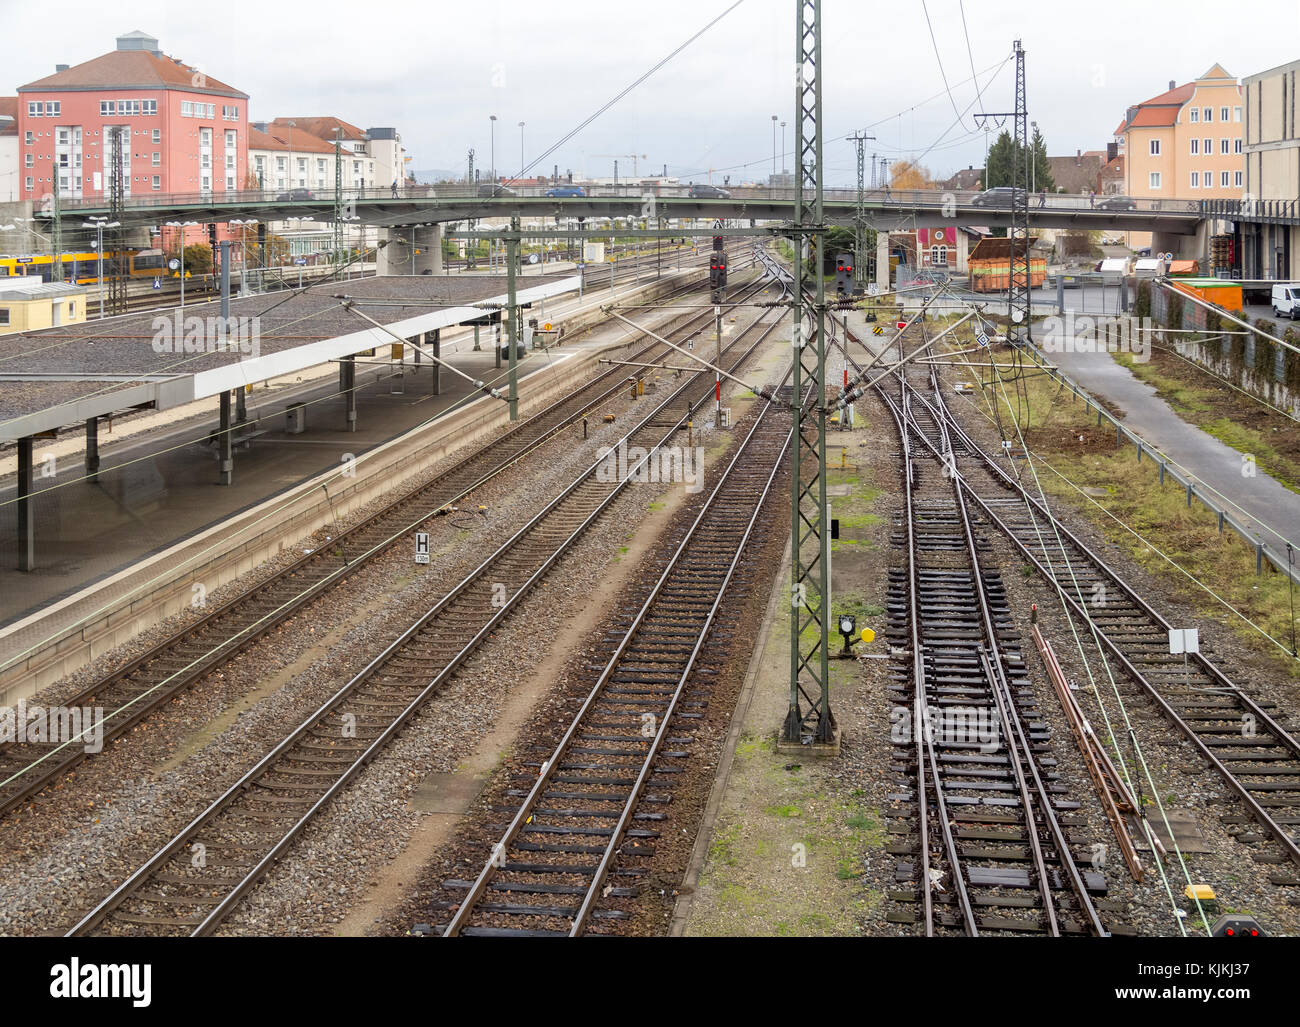 Aerial view train depot stock photos aerial view train for Depot regensburg